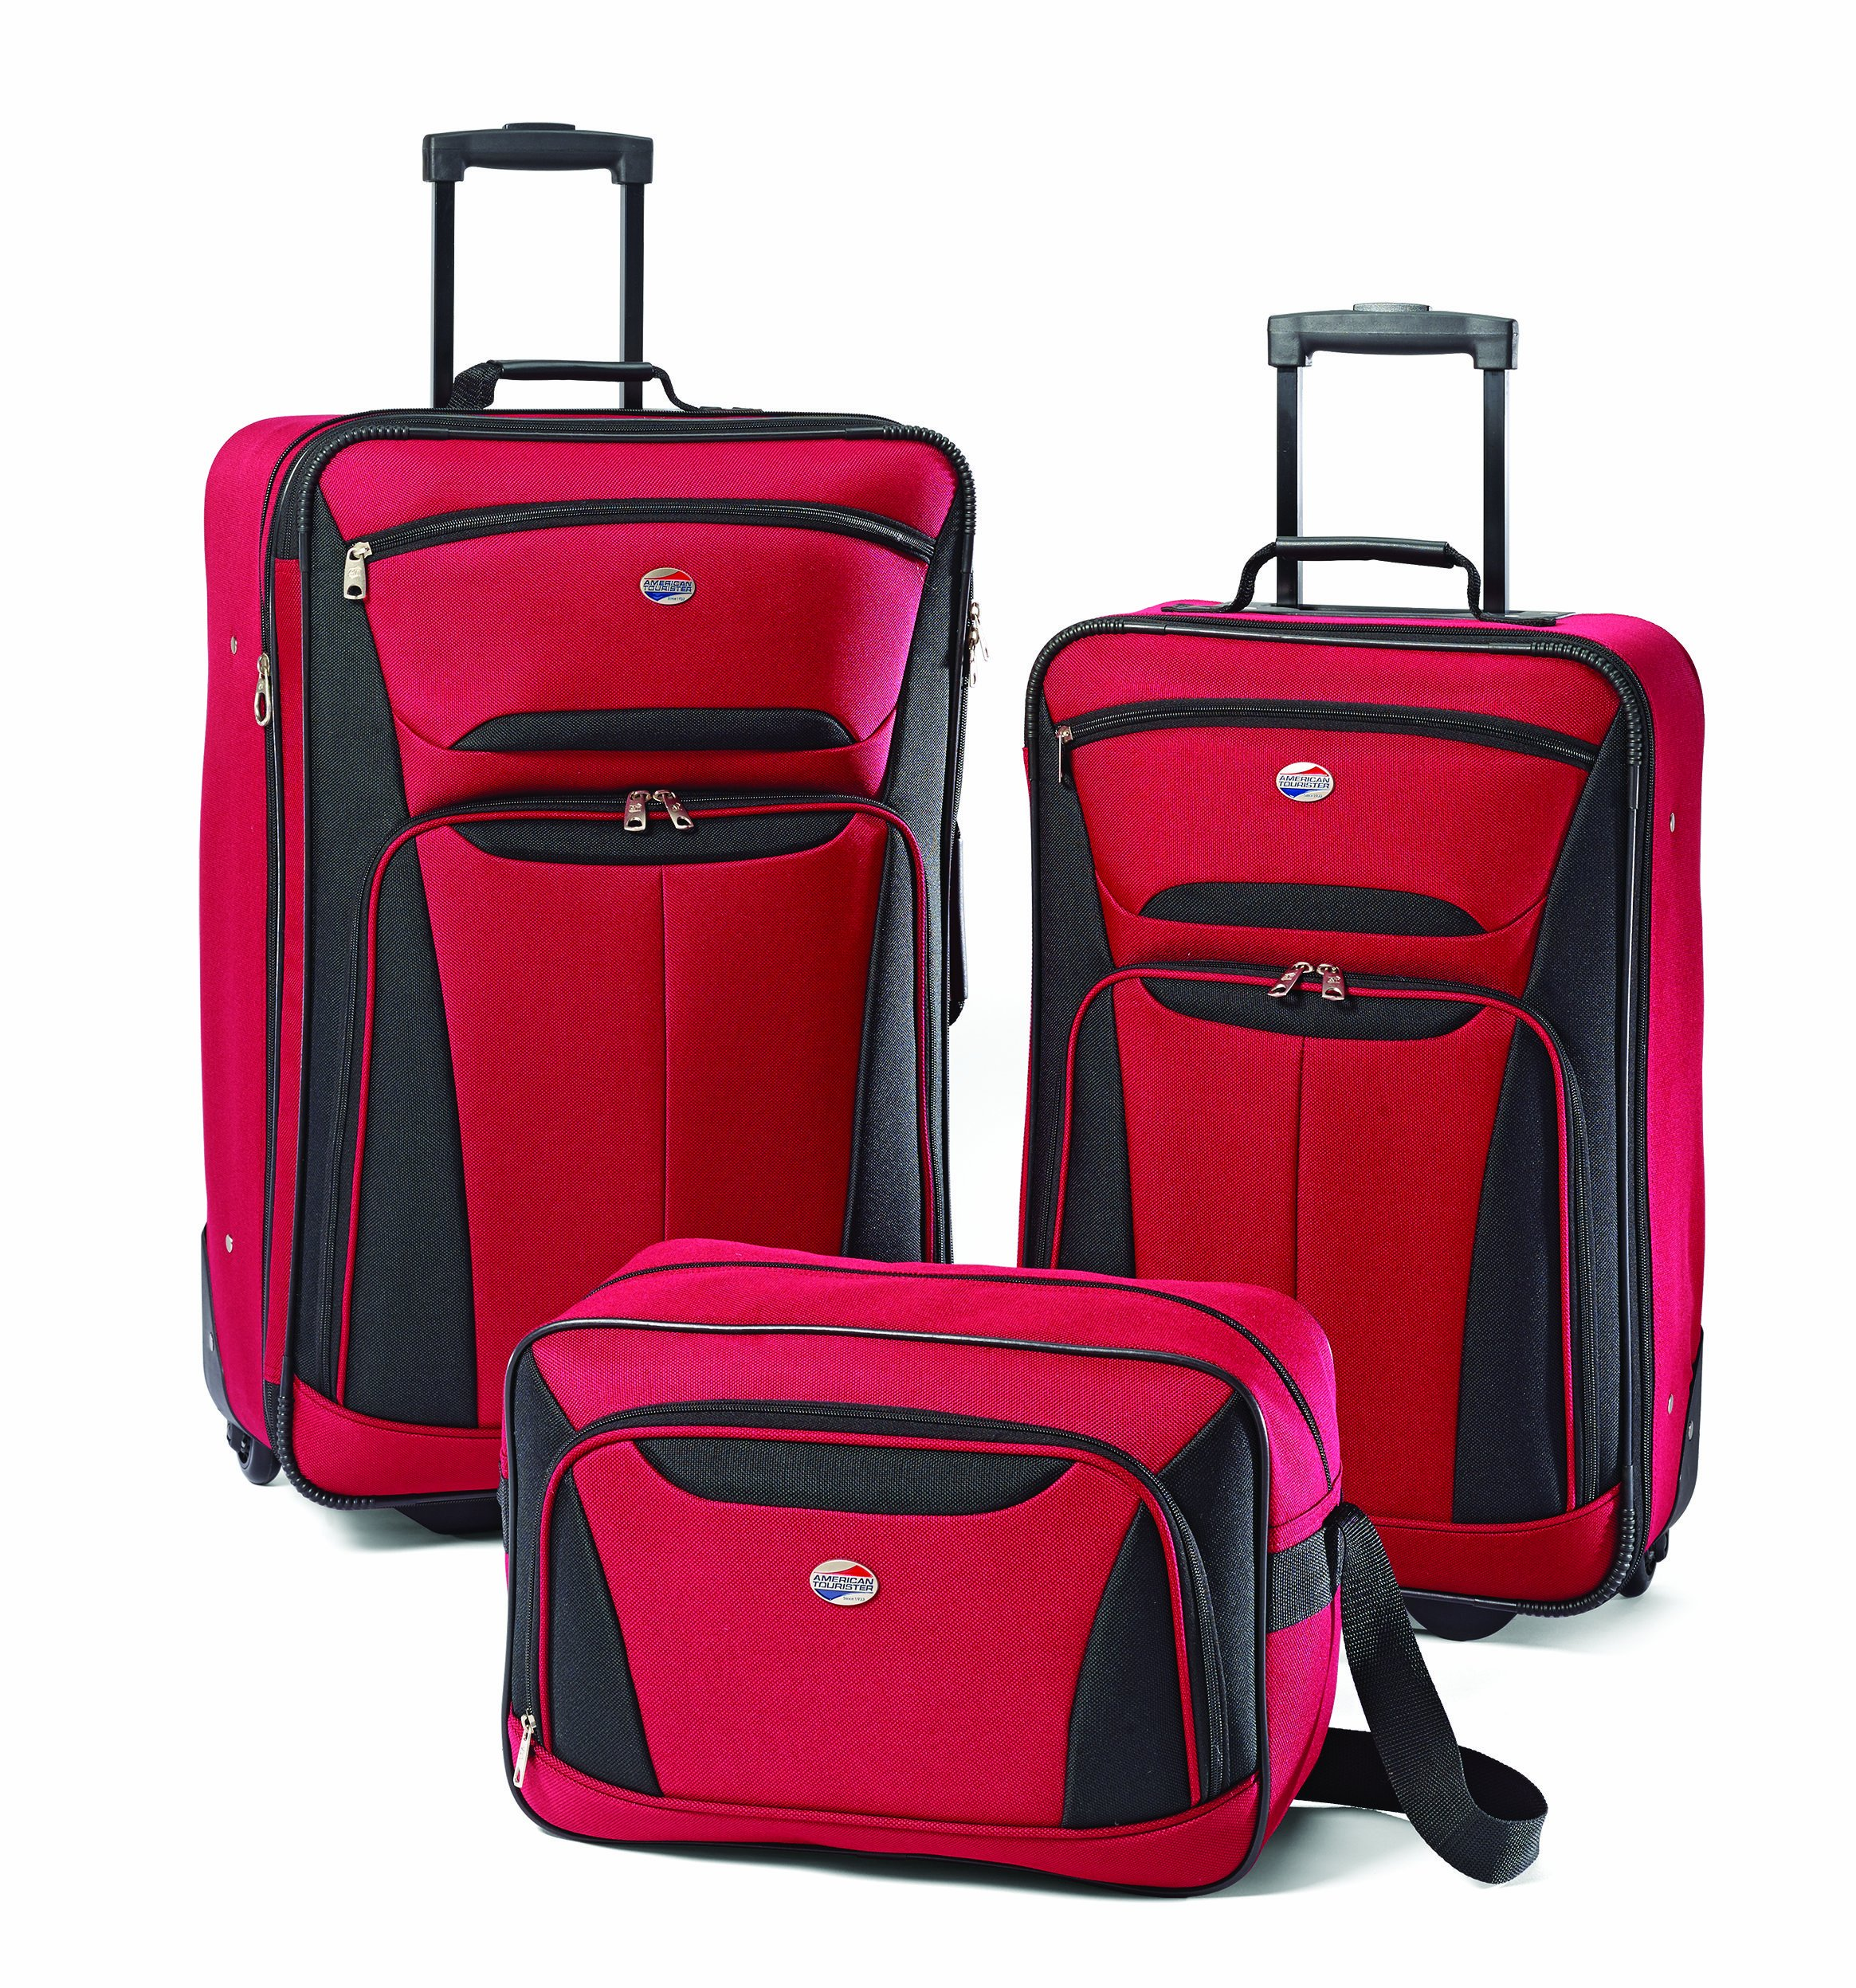 American Tourister Luggage 3-Piece Set, Red/Black by American Tourister